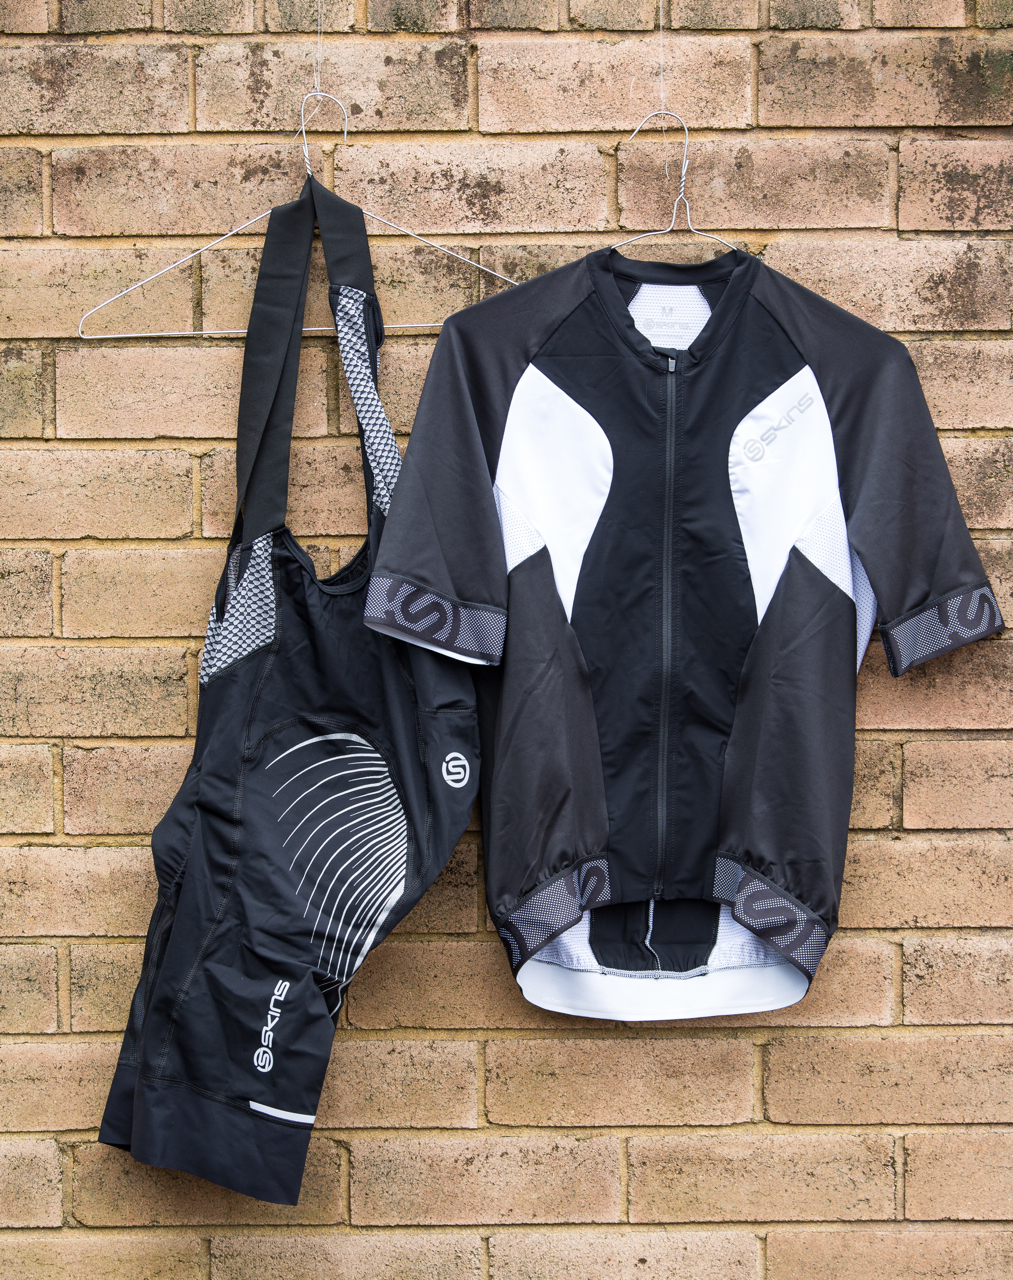 SKINS  Men s and Women s Cycle Range - Cyclist Australia NZ 6696a8476